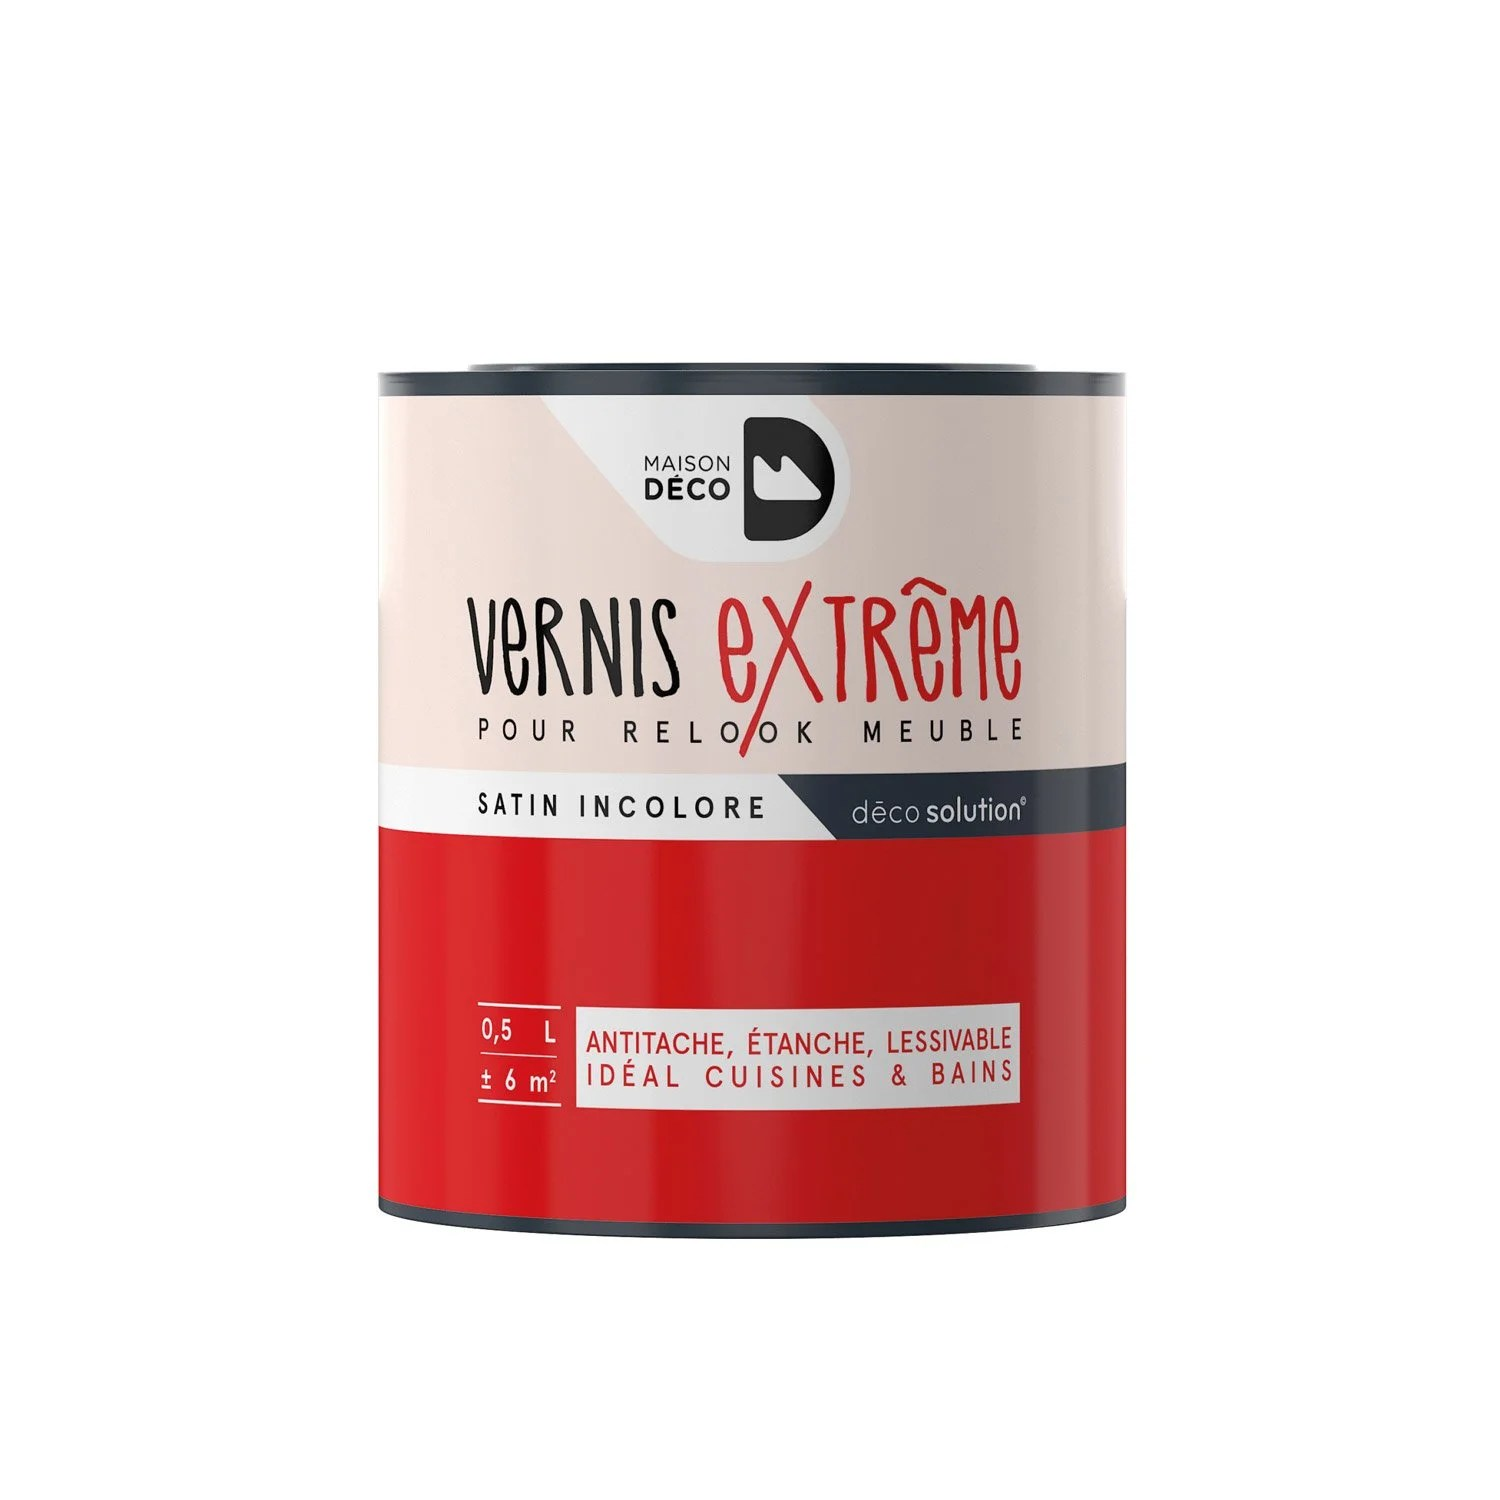 Cire Murale Incolore Leroy Merlin Vernis Le Tonkinois Leroy Merlin Stunning Peinture Vernis L Yacht